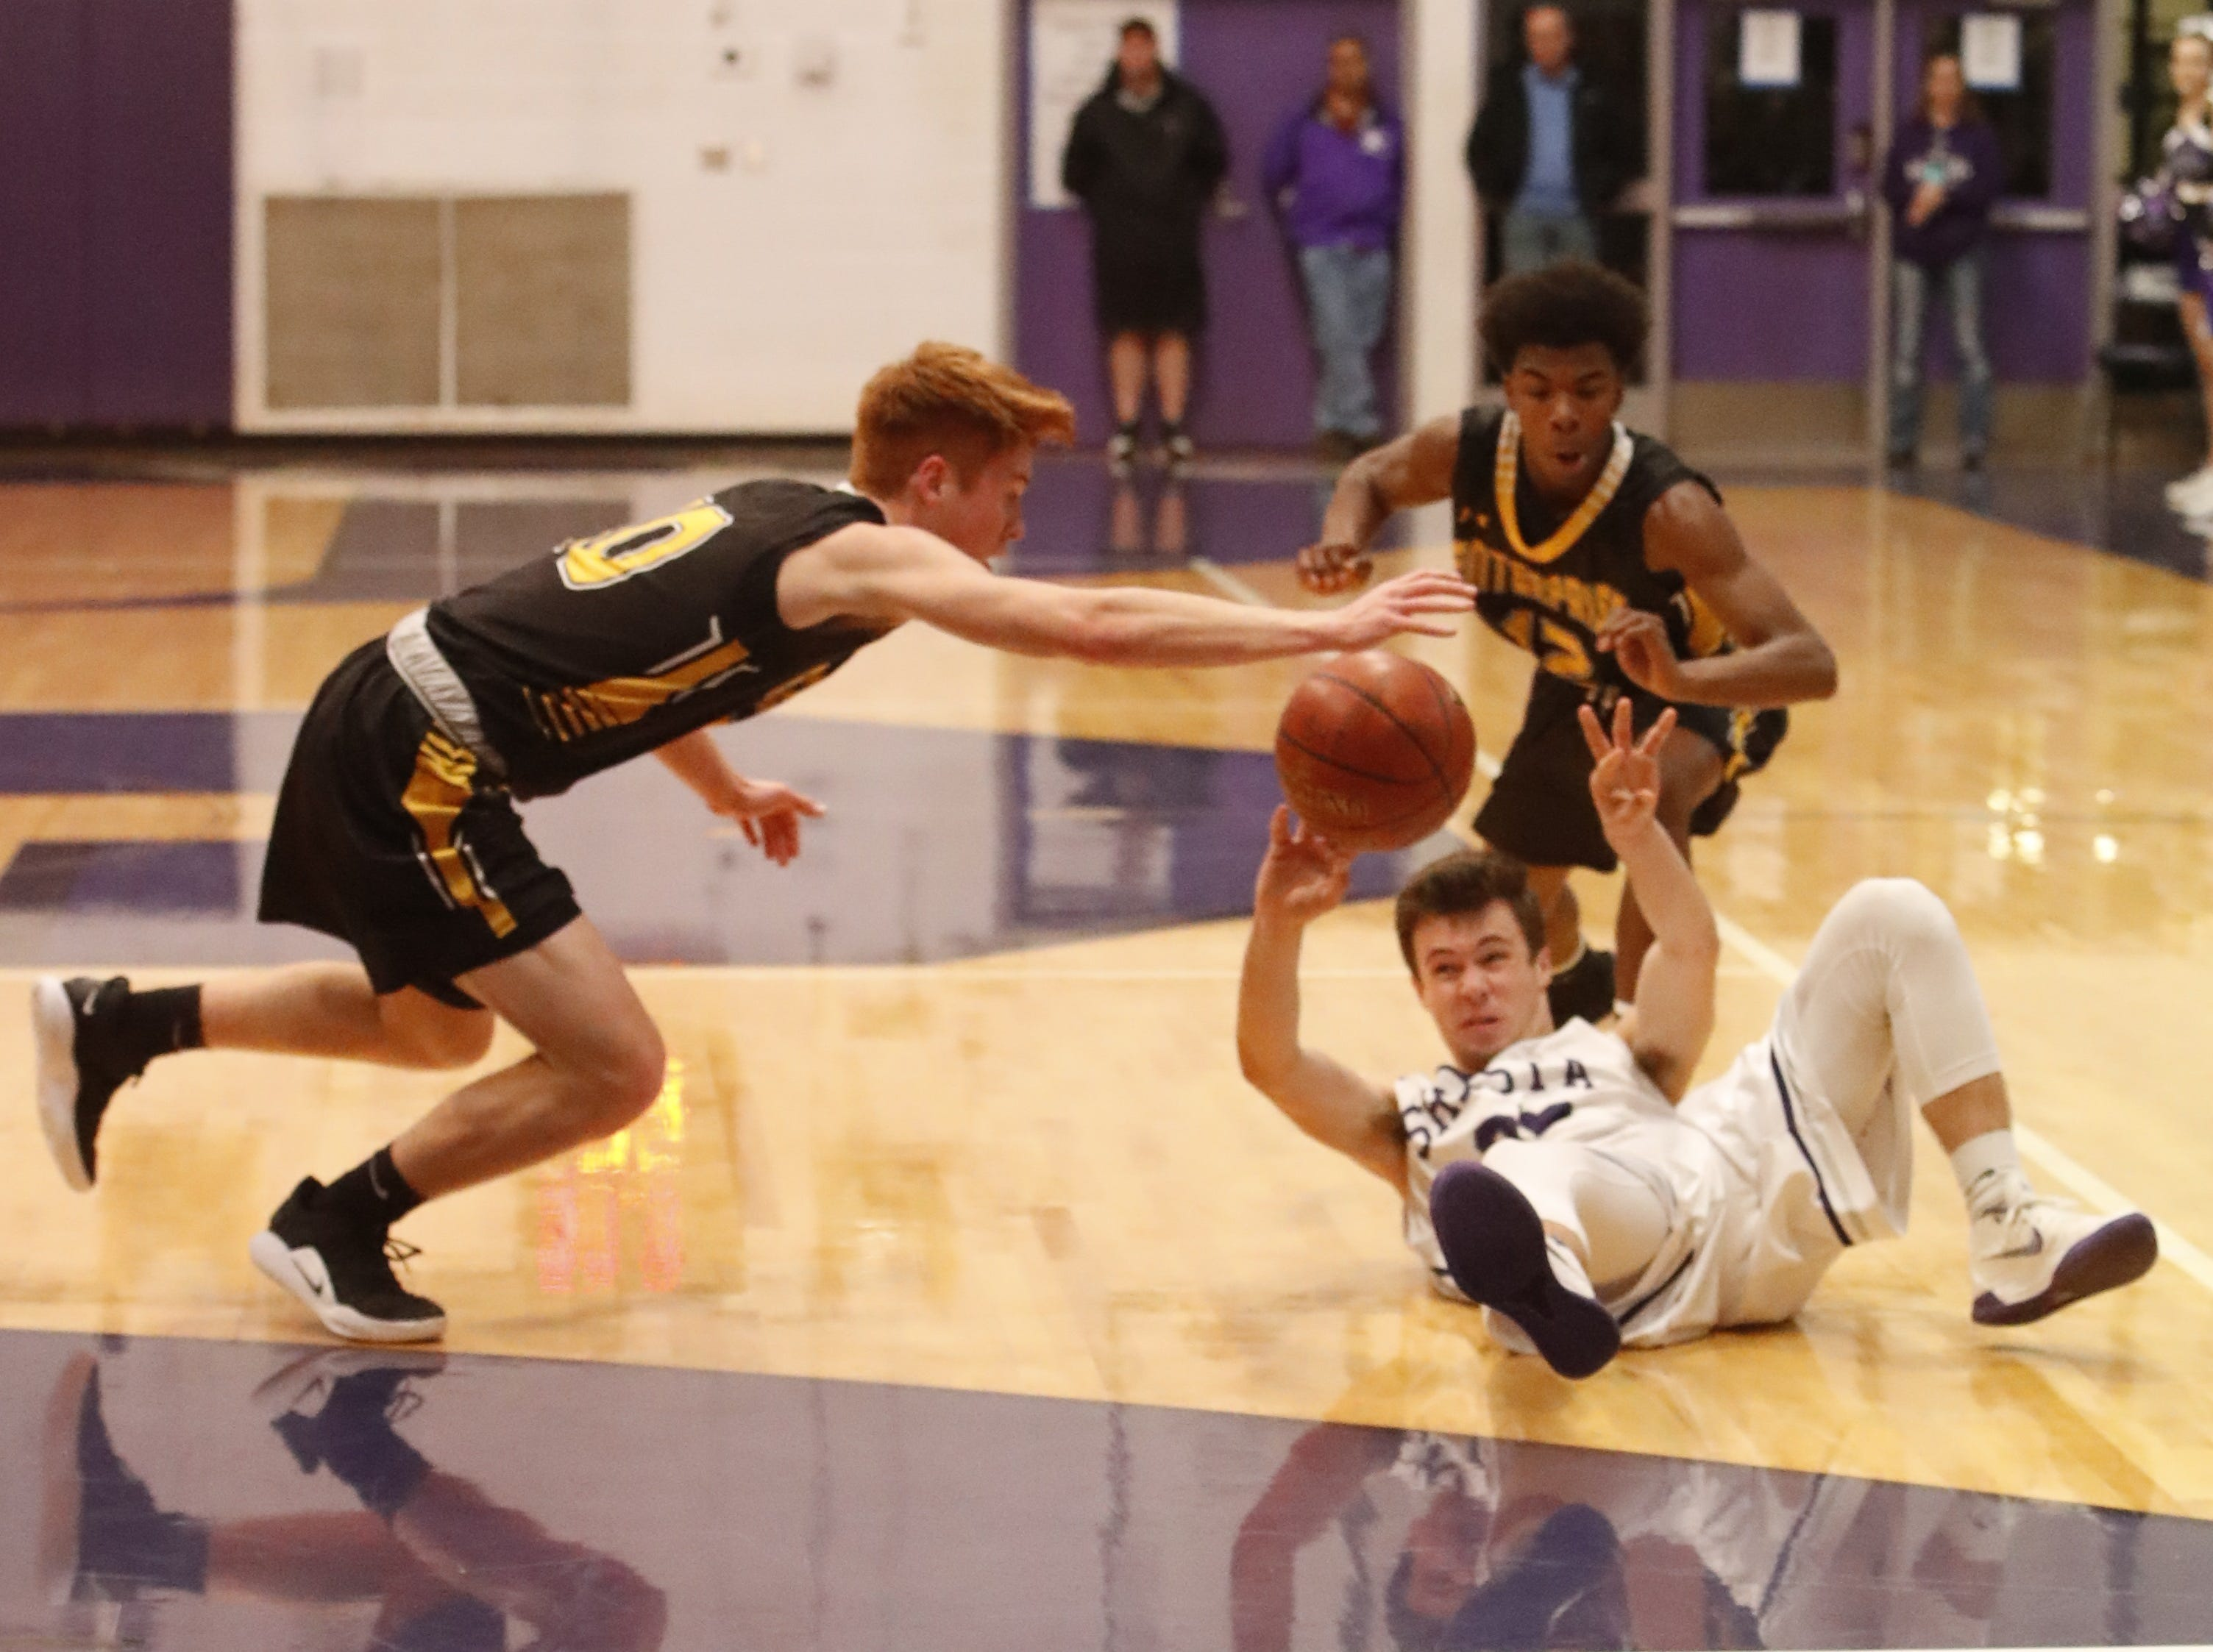 Shasta and Enterprise players scramble for the ball during the second half of a league game on Tuesday, Feb. 5, 2019.